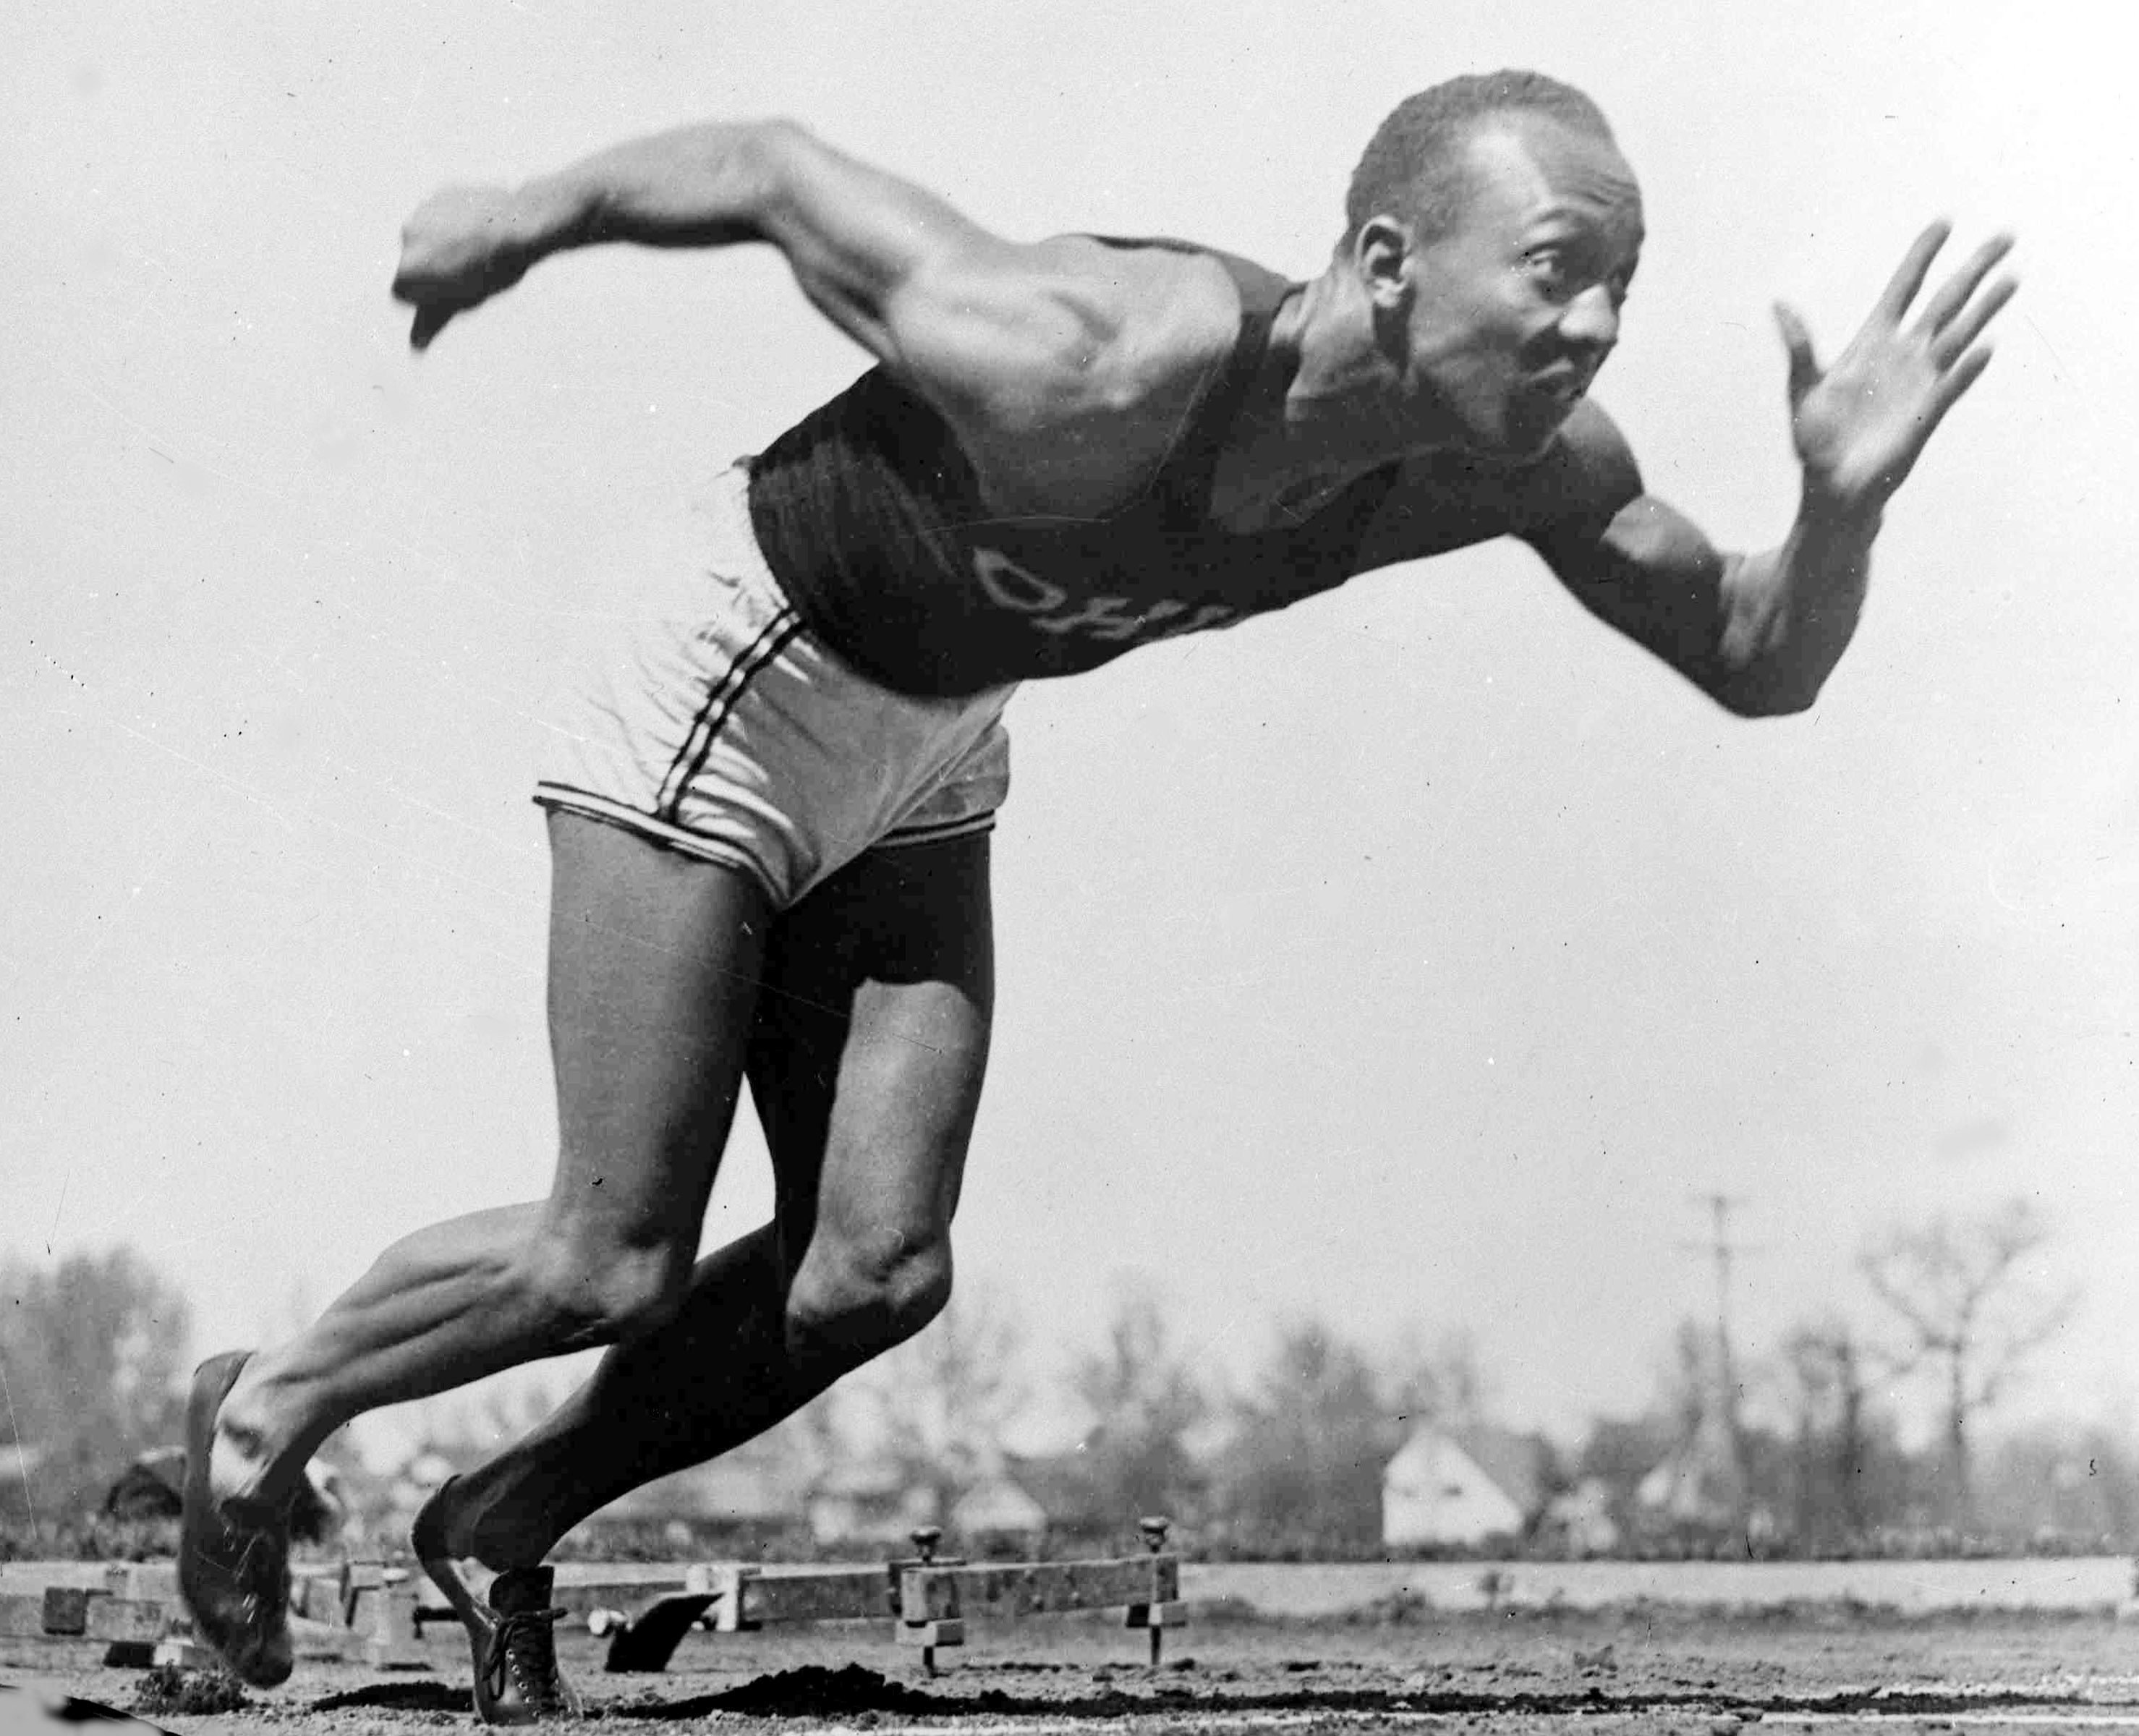 jesse owens quote the battles that count aren t the ones for jesse owens quote the battles that count aren t the ones for gold medals the struggles in yourself the invisible battles inside all of us th